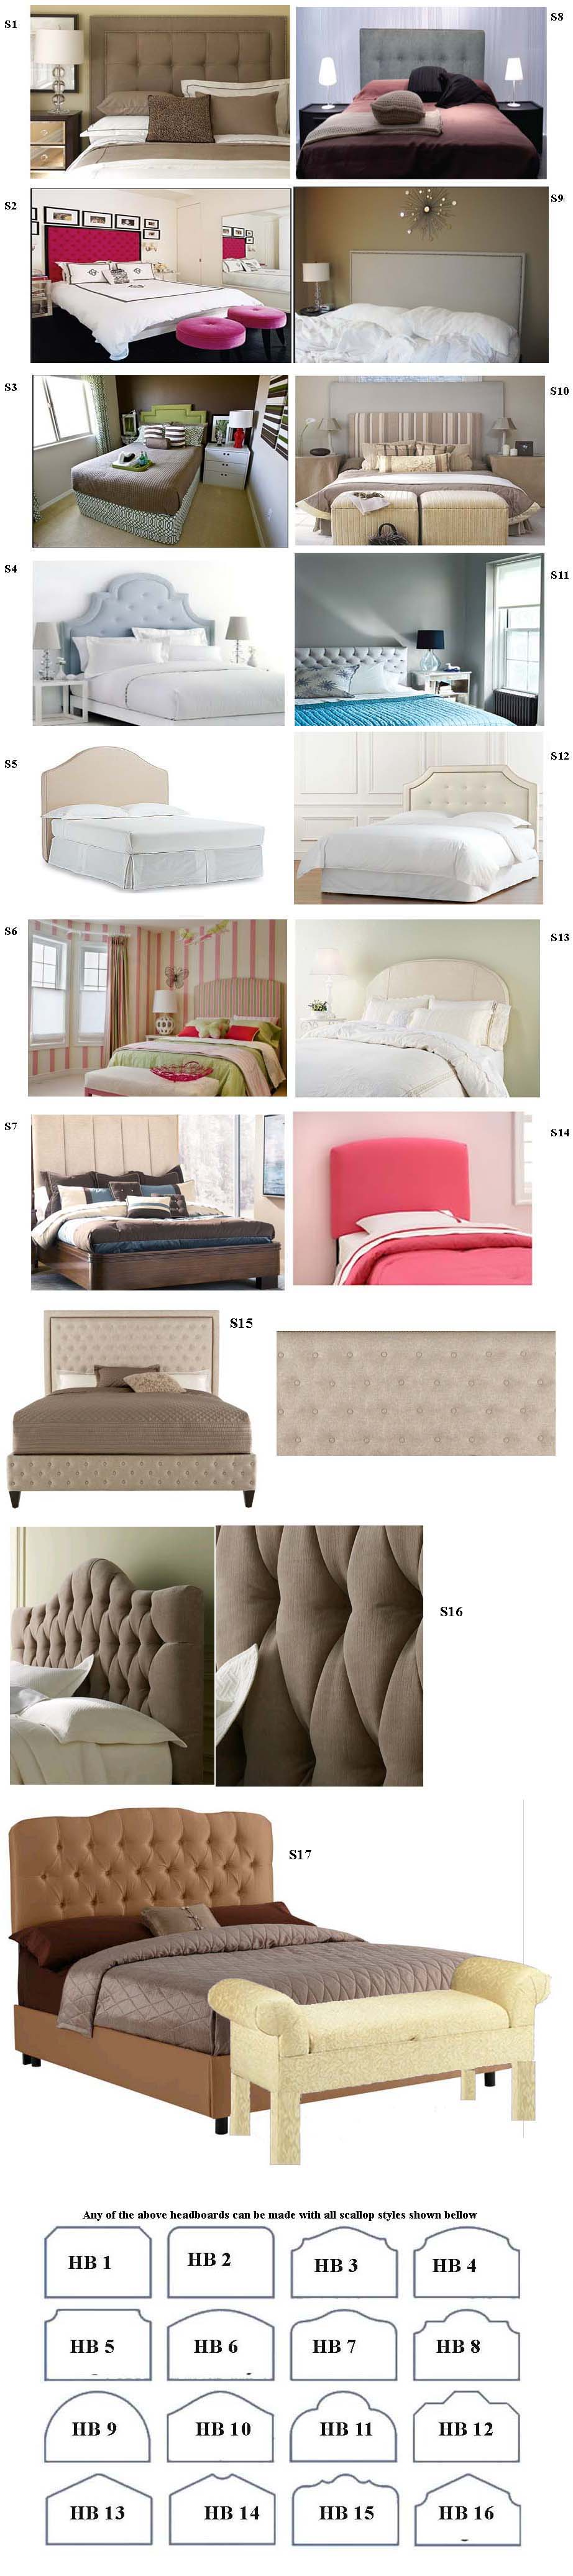 Headboard Diagrams